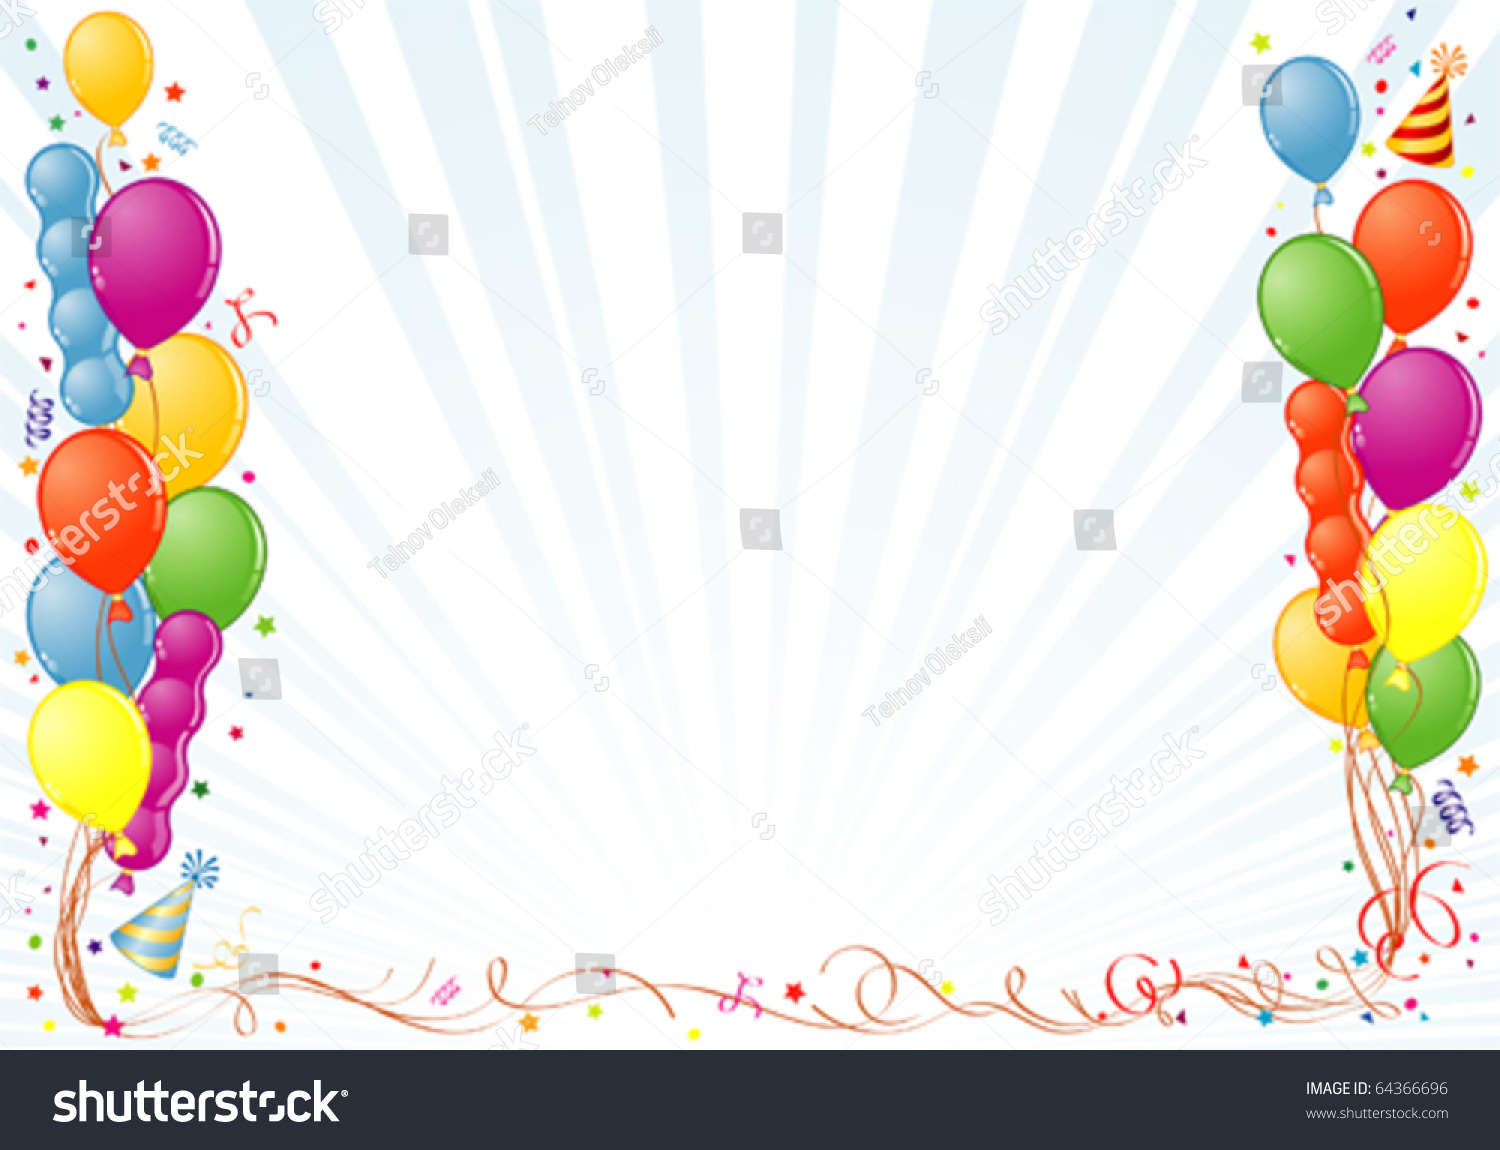 birthday frame with balloon streamer and party hat element for design vector illustration